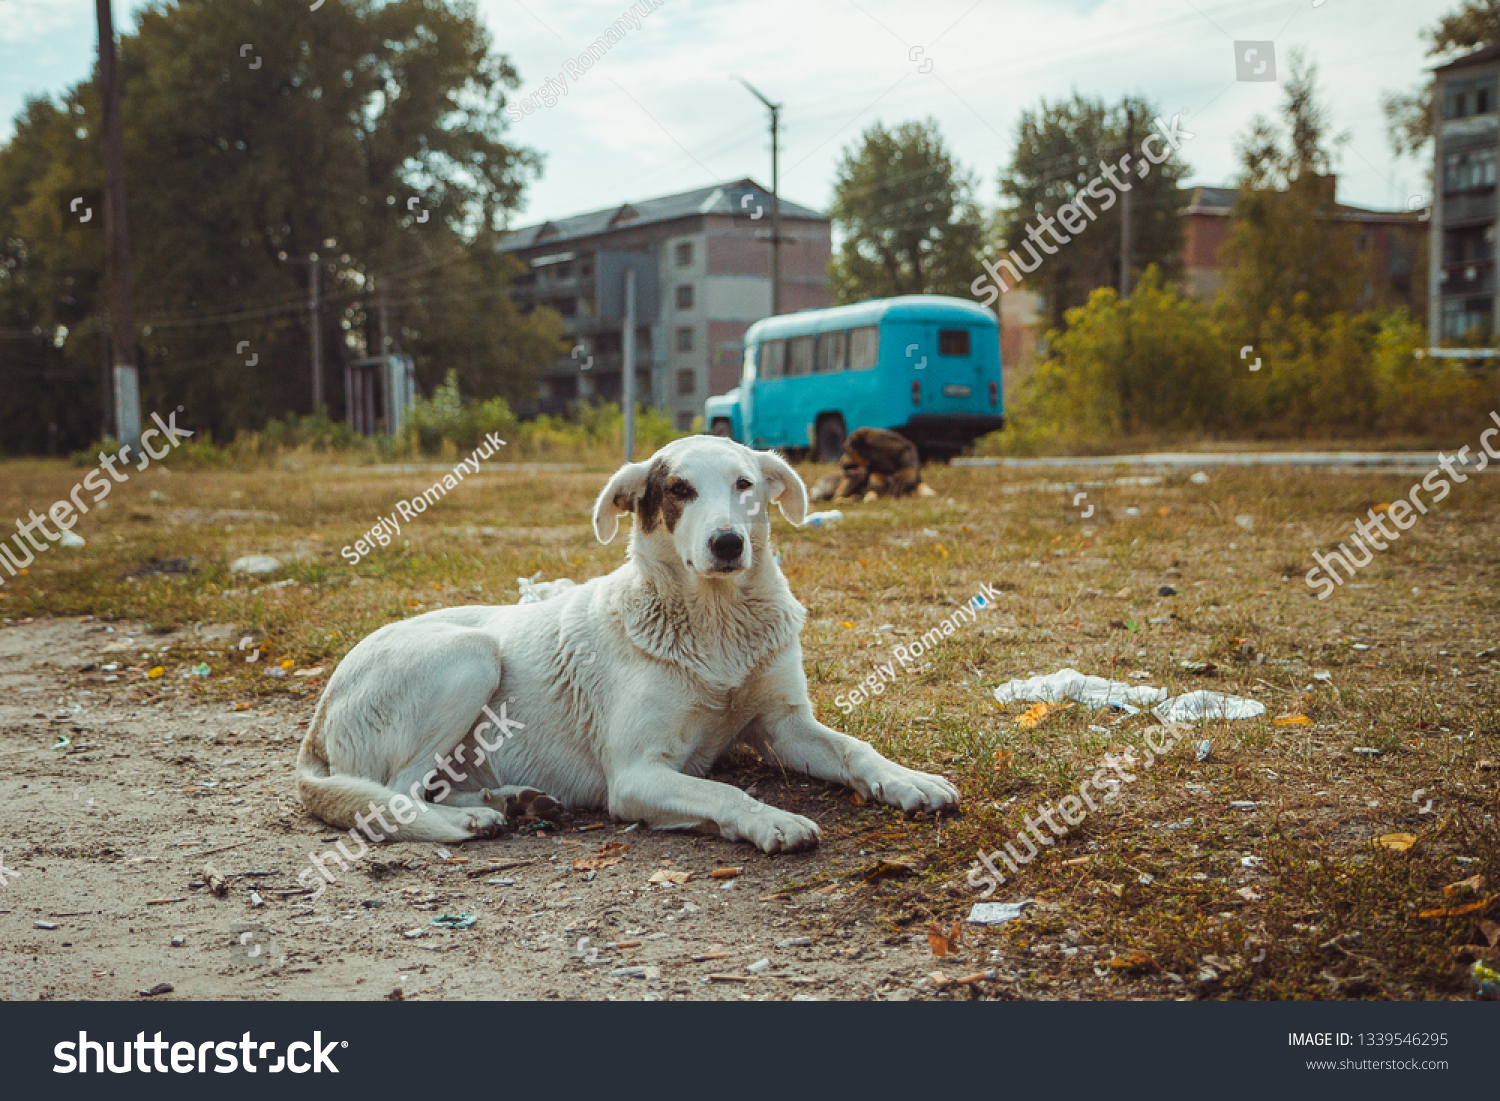 Homeless wild dog in old radioactive zone in Pripyat city - abandoned ghost town after nuclear disaster. Chernobyl exclusion zone. #1339546295